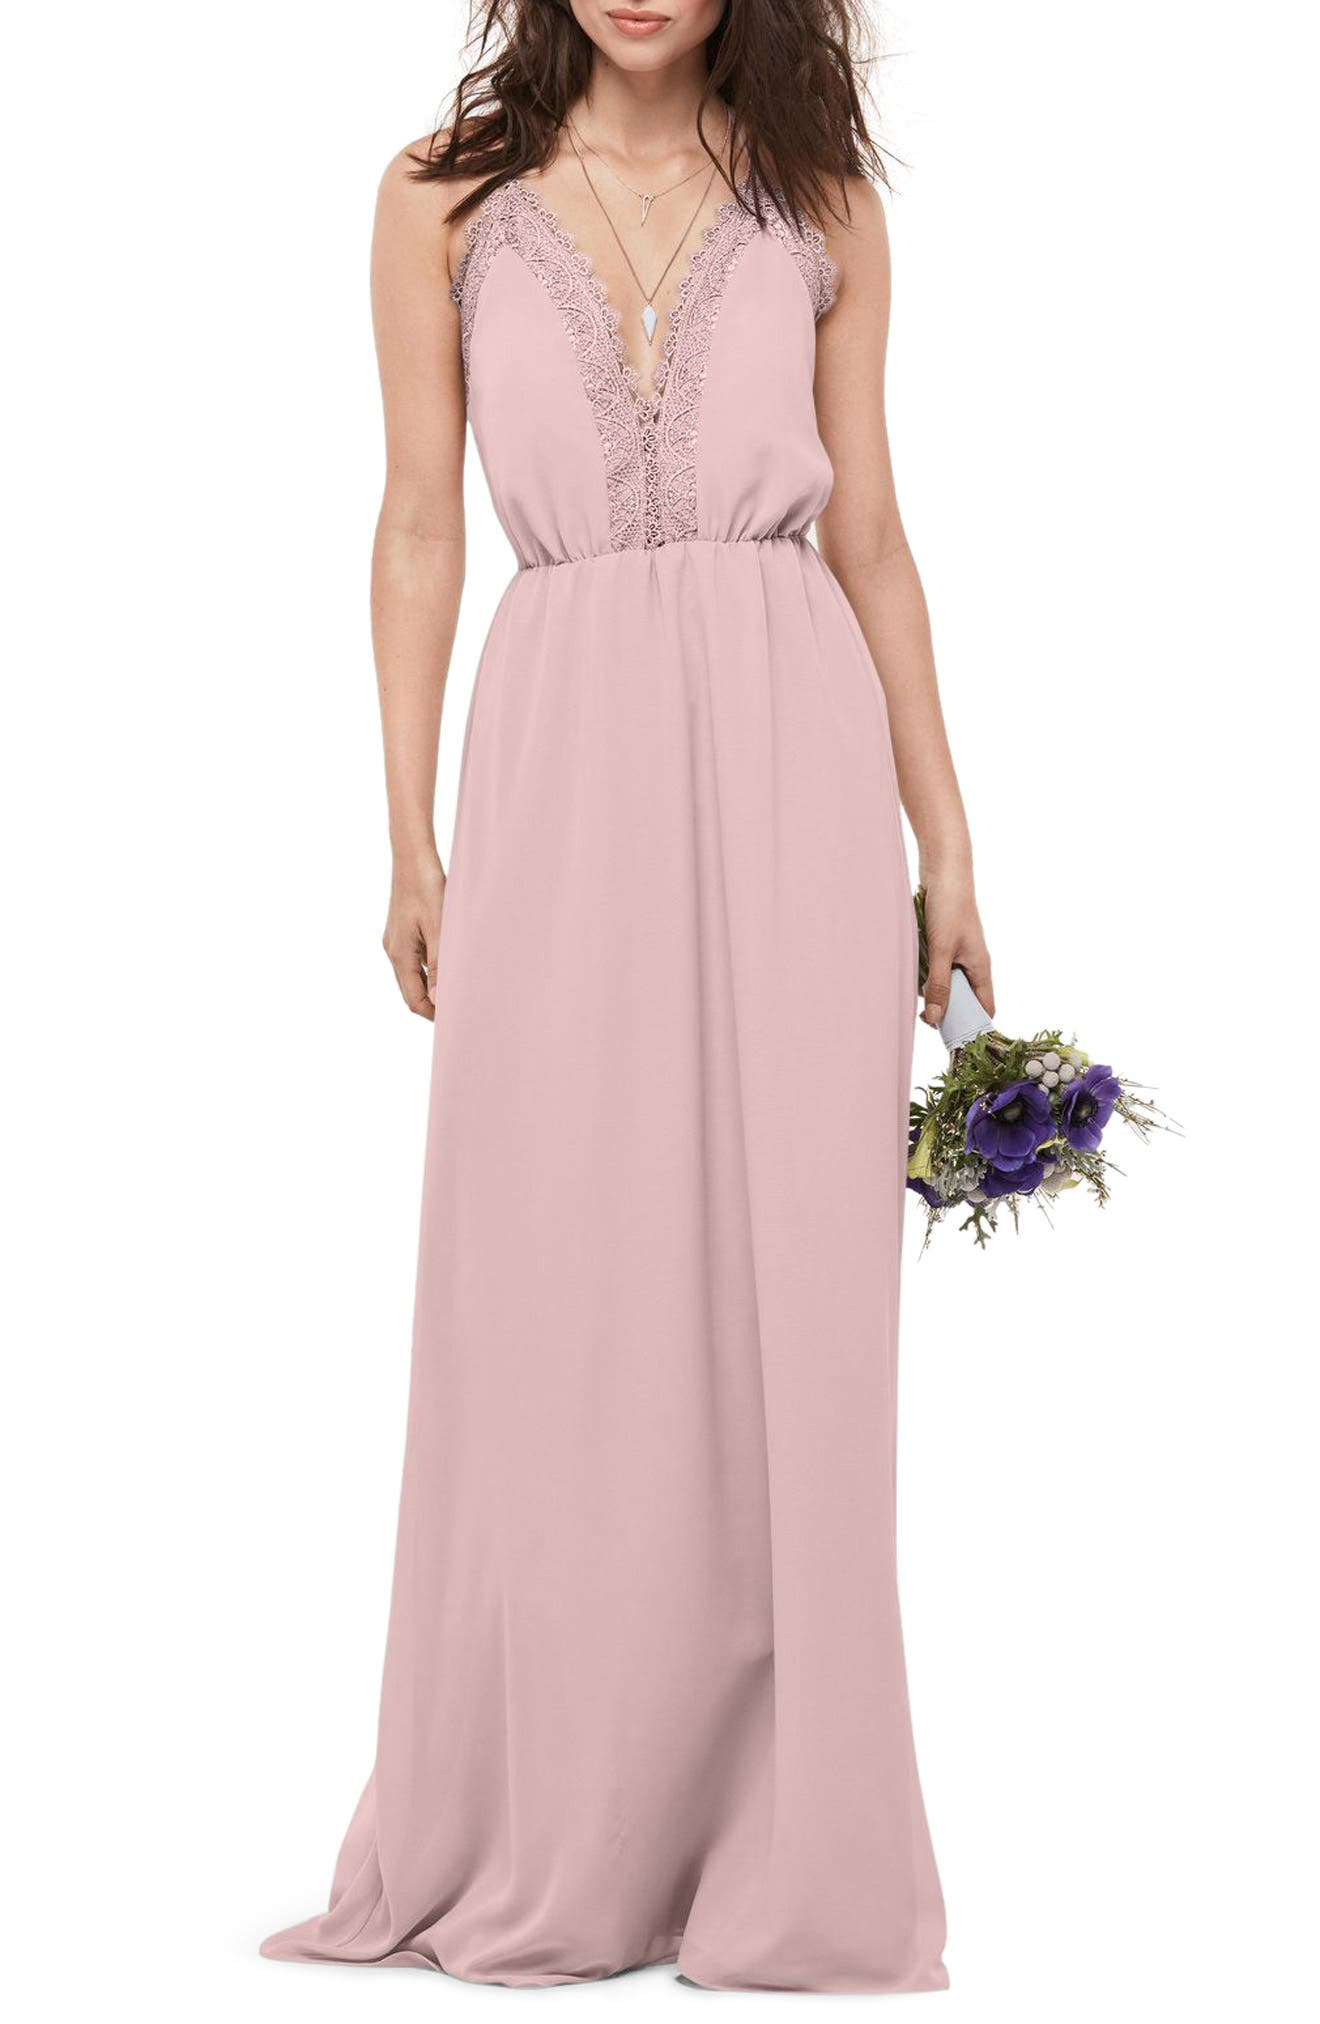 Alternate Image 1 Selected - WTOO Lace Trim Chiffon Halter Gown